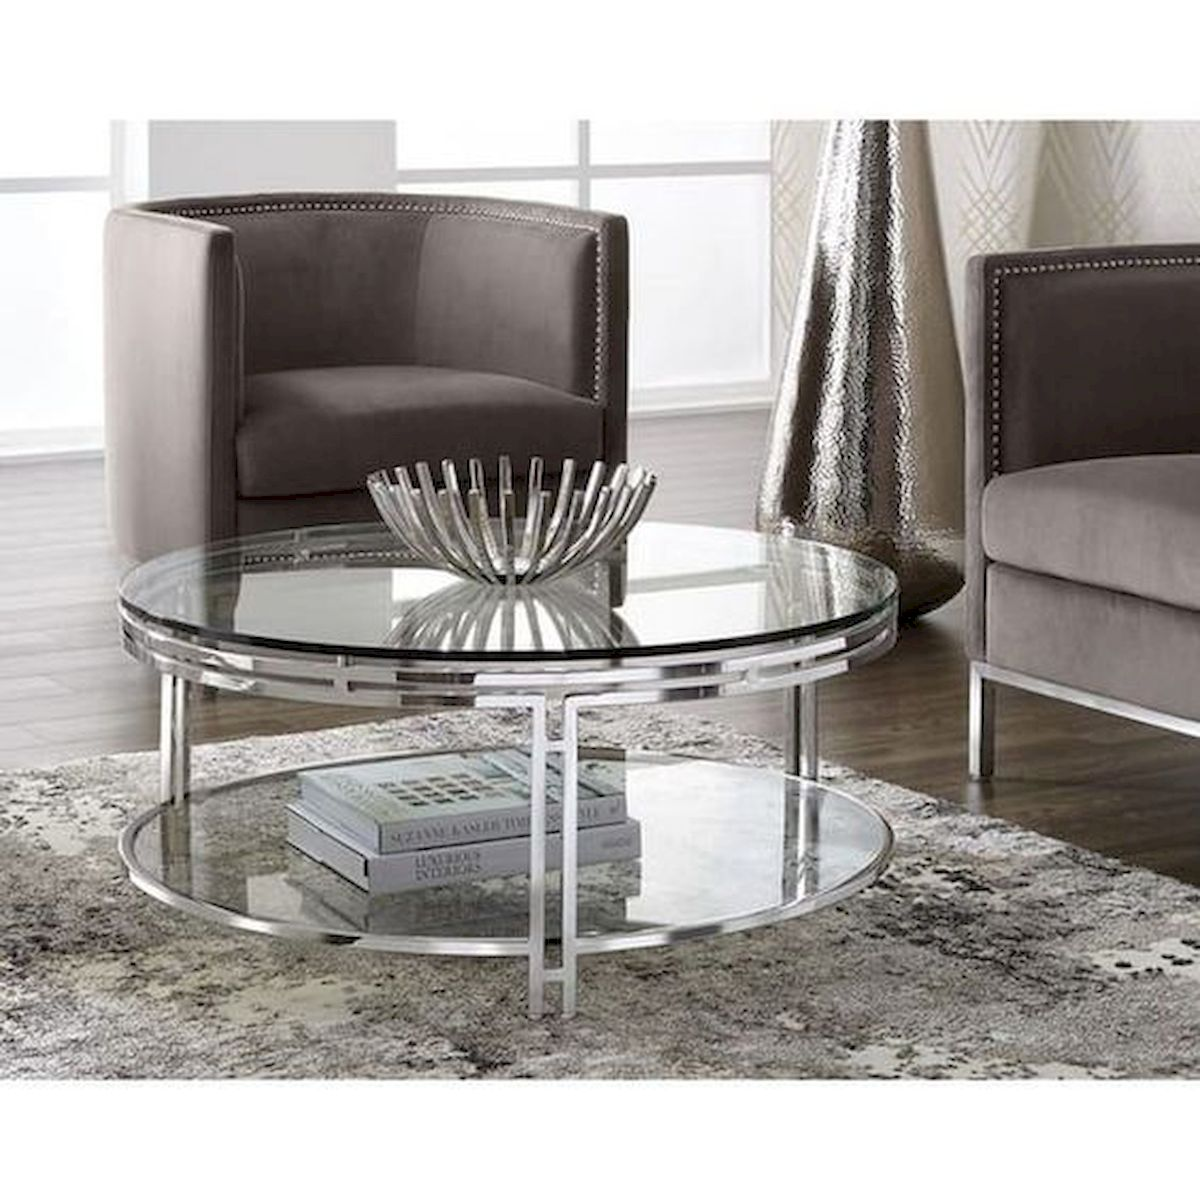 40 Awesome Modern Glass Coffee Table Design Ideas For Your Living Room (13)